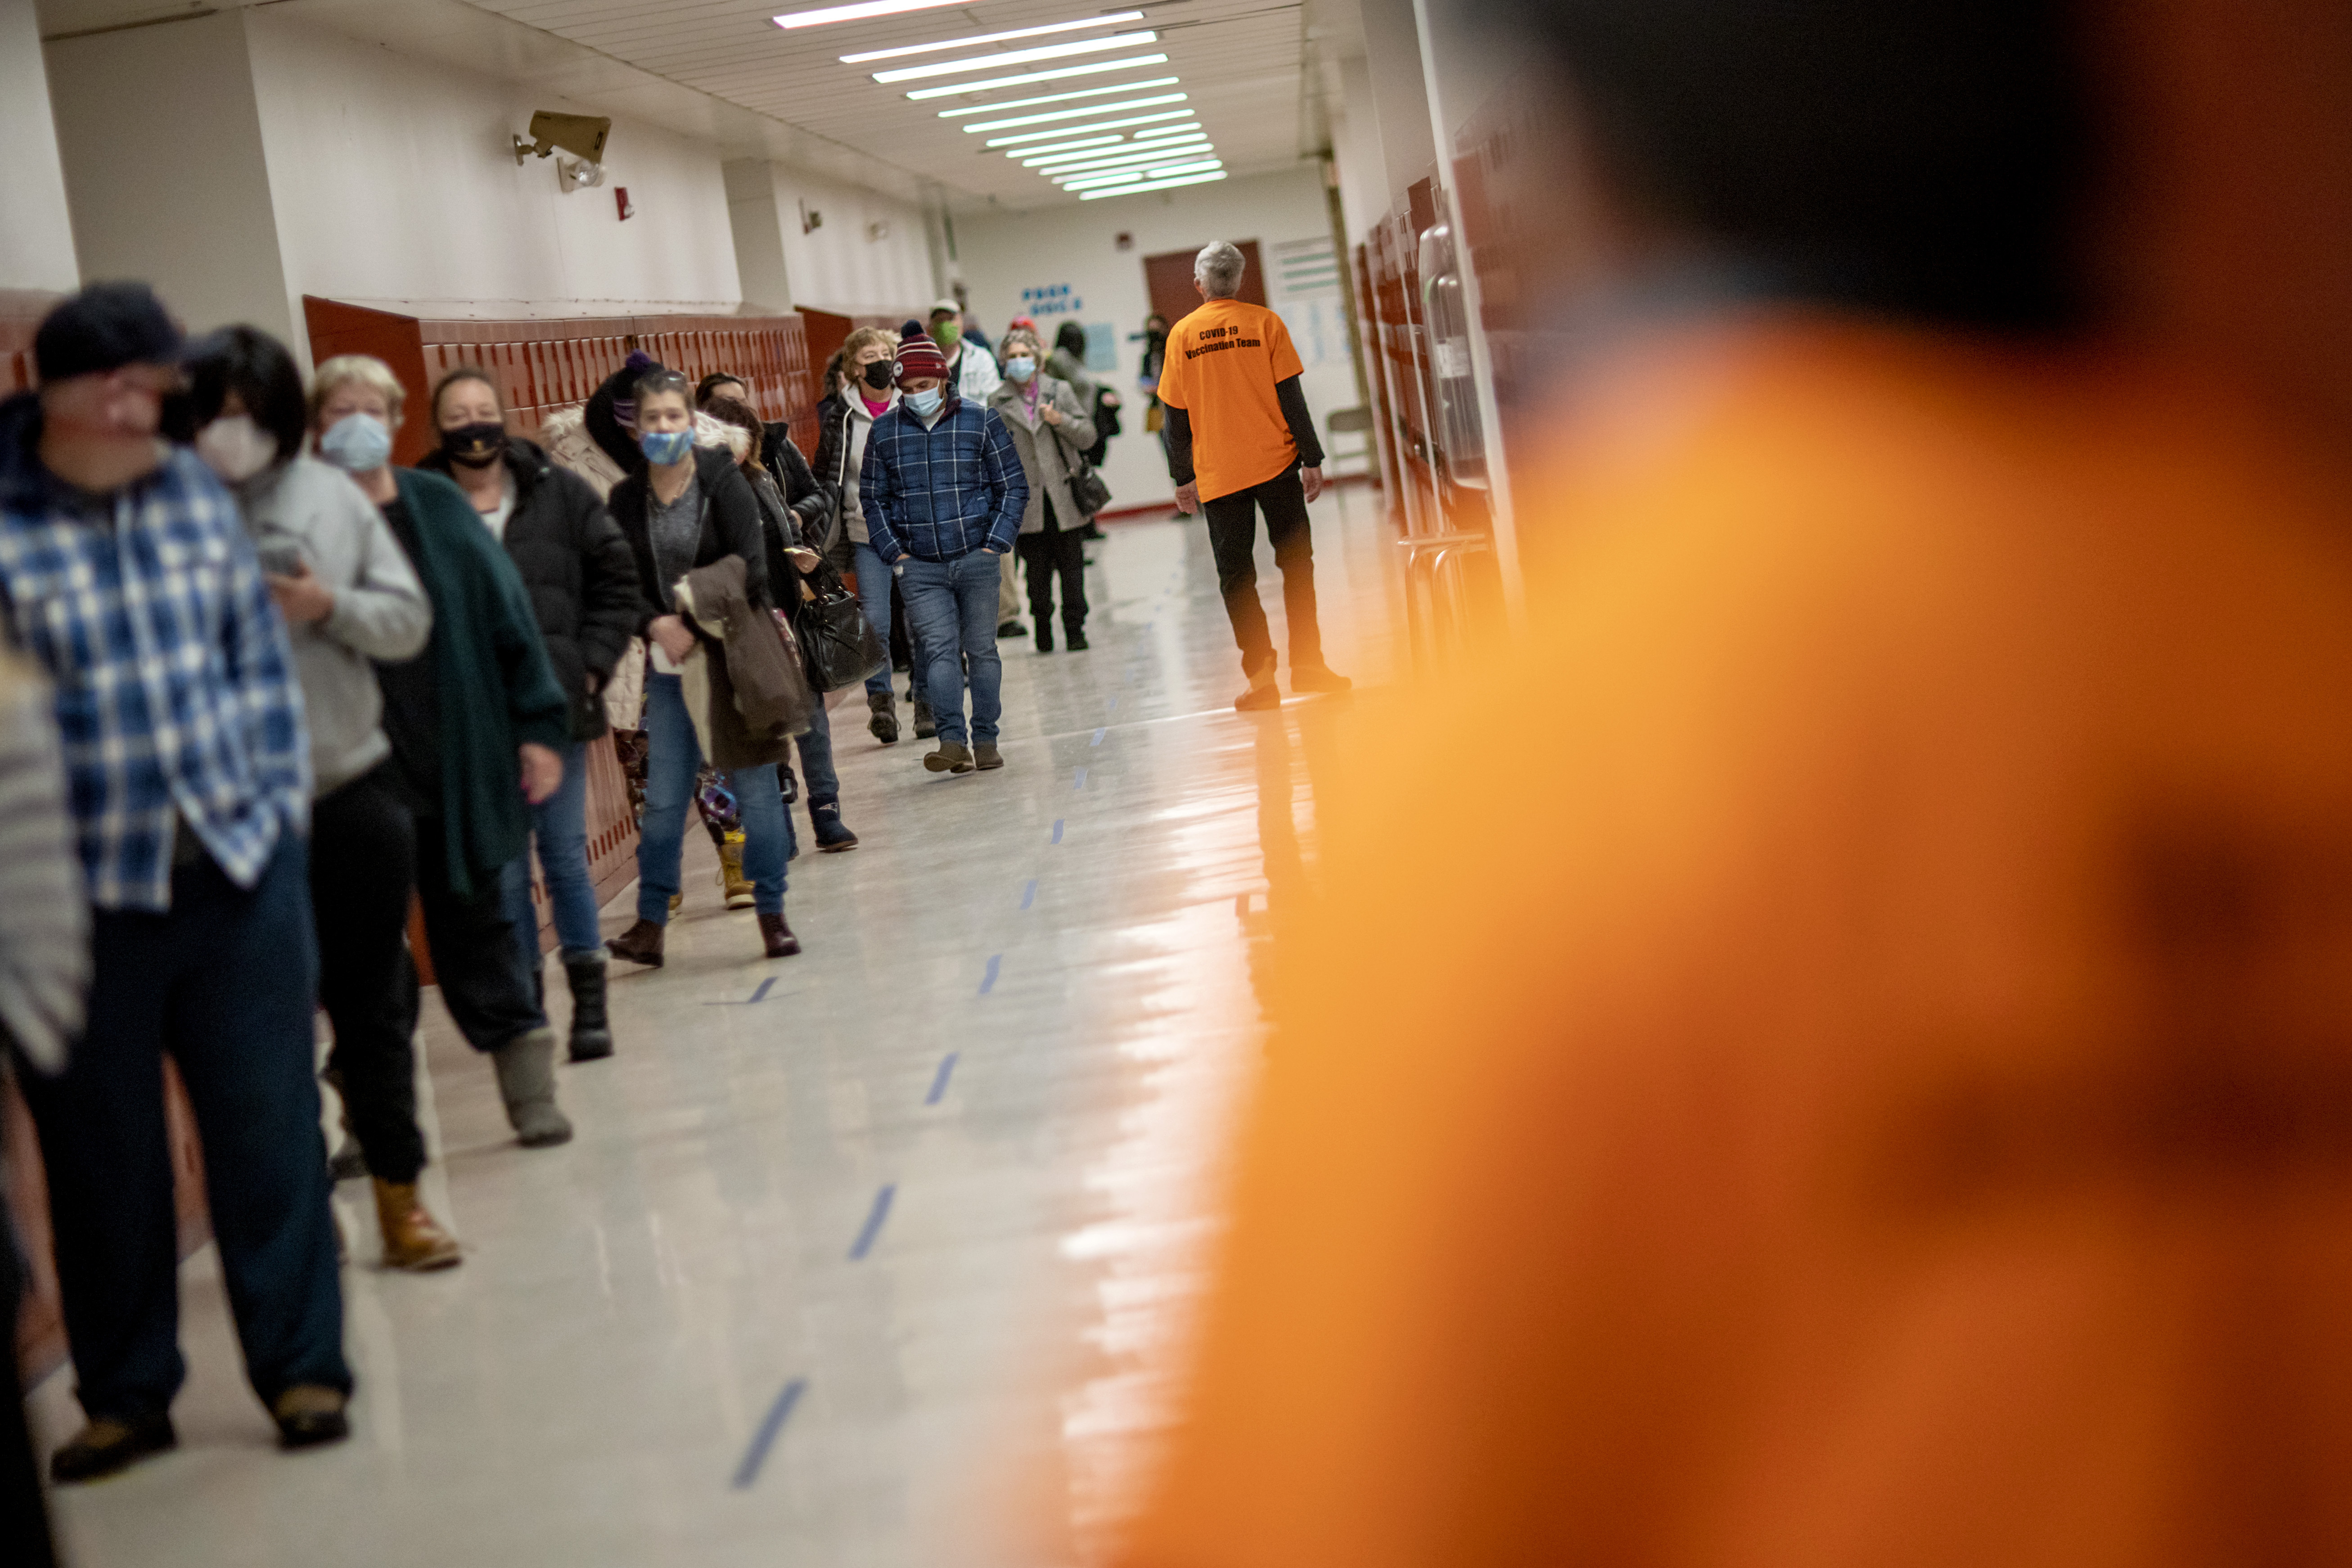 People line up for vaccines at a clinic in Central Falls, R.I., Saturday Feb. 20, 2021. Nearly a third of adults in the city have received at least one dose of vaccine, according to state data. Health officials say the city of about 20,000 has seen a marked drop in COVID-19 cases as a result.